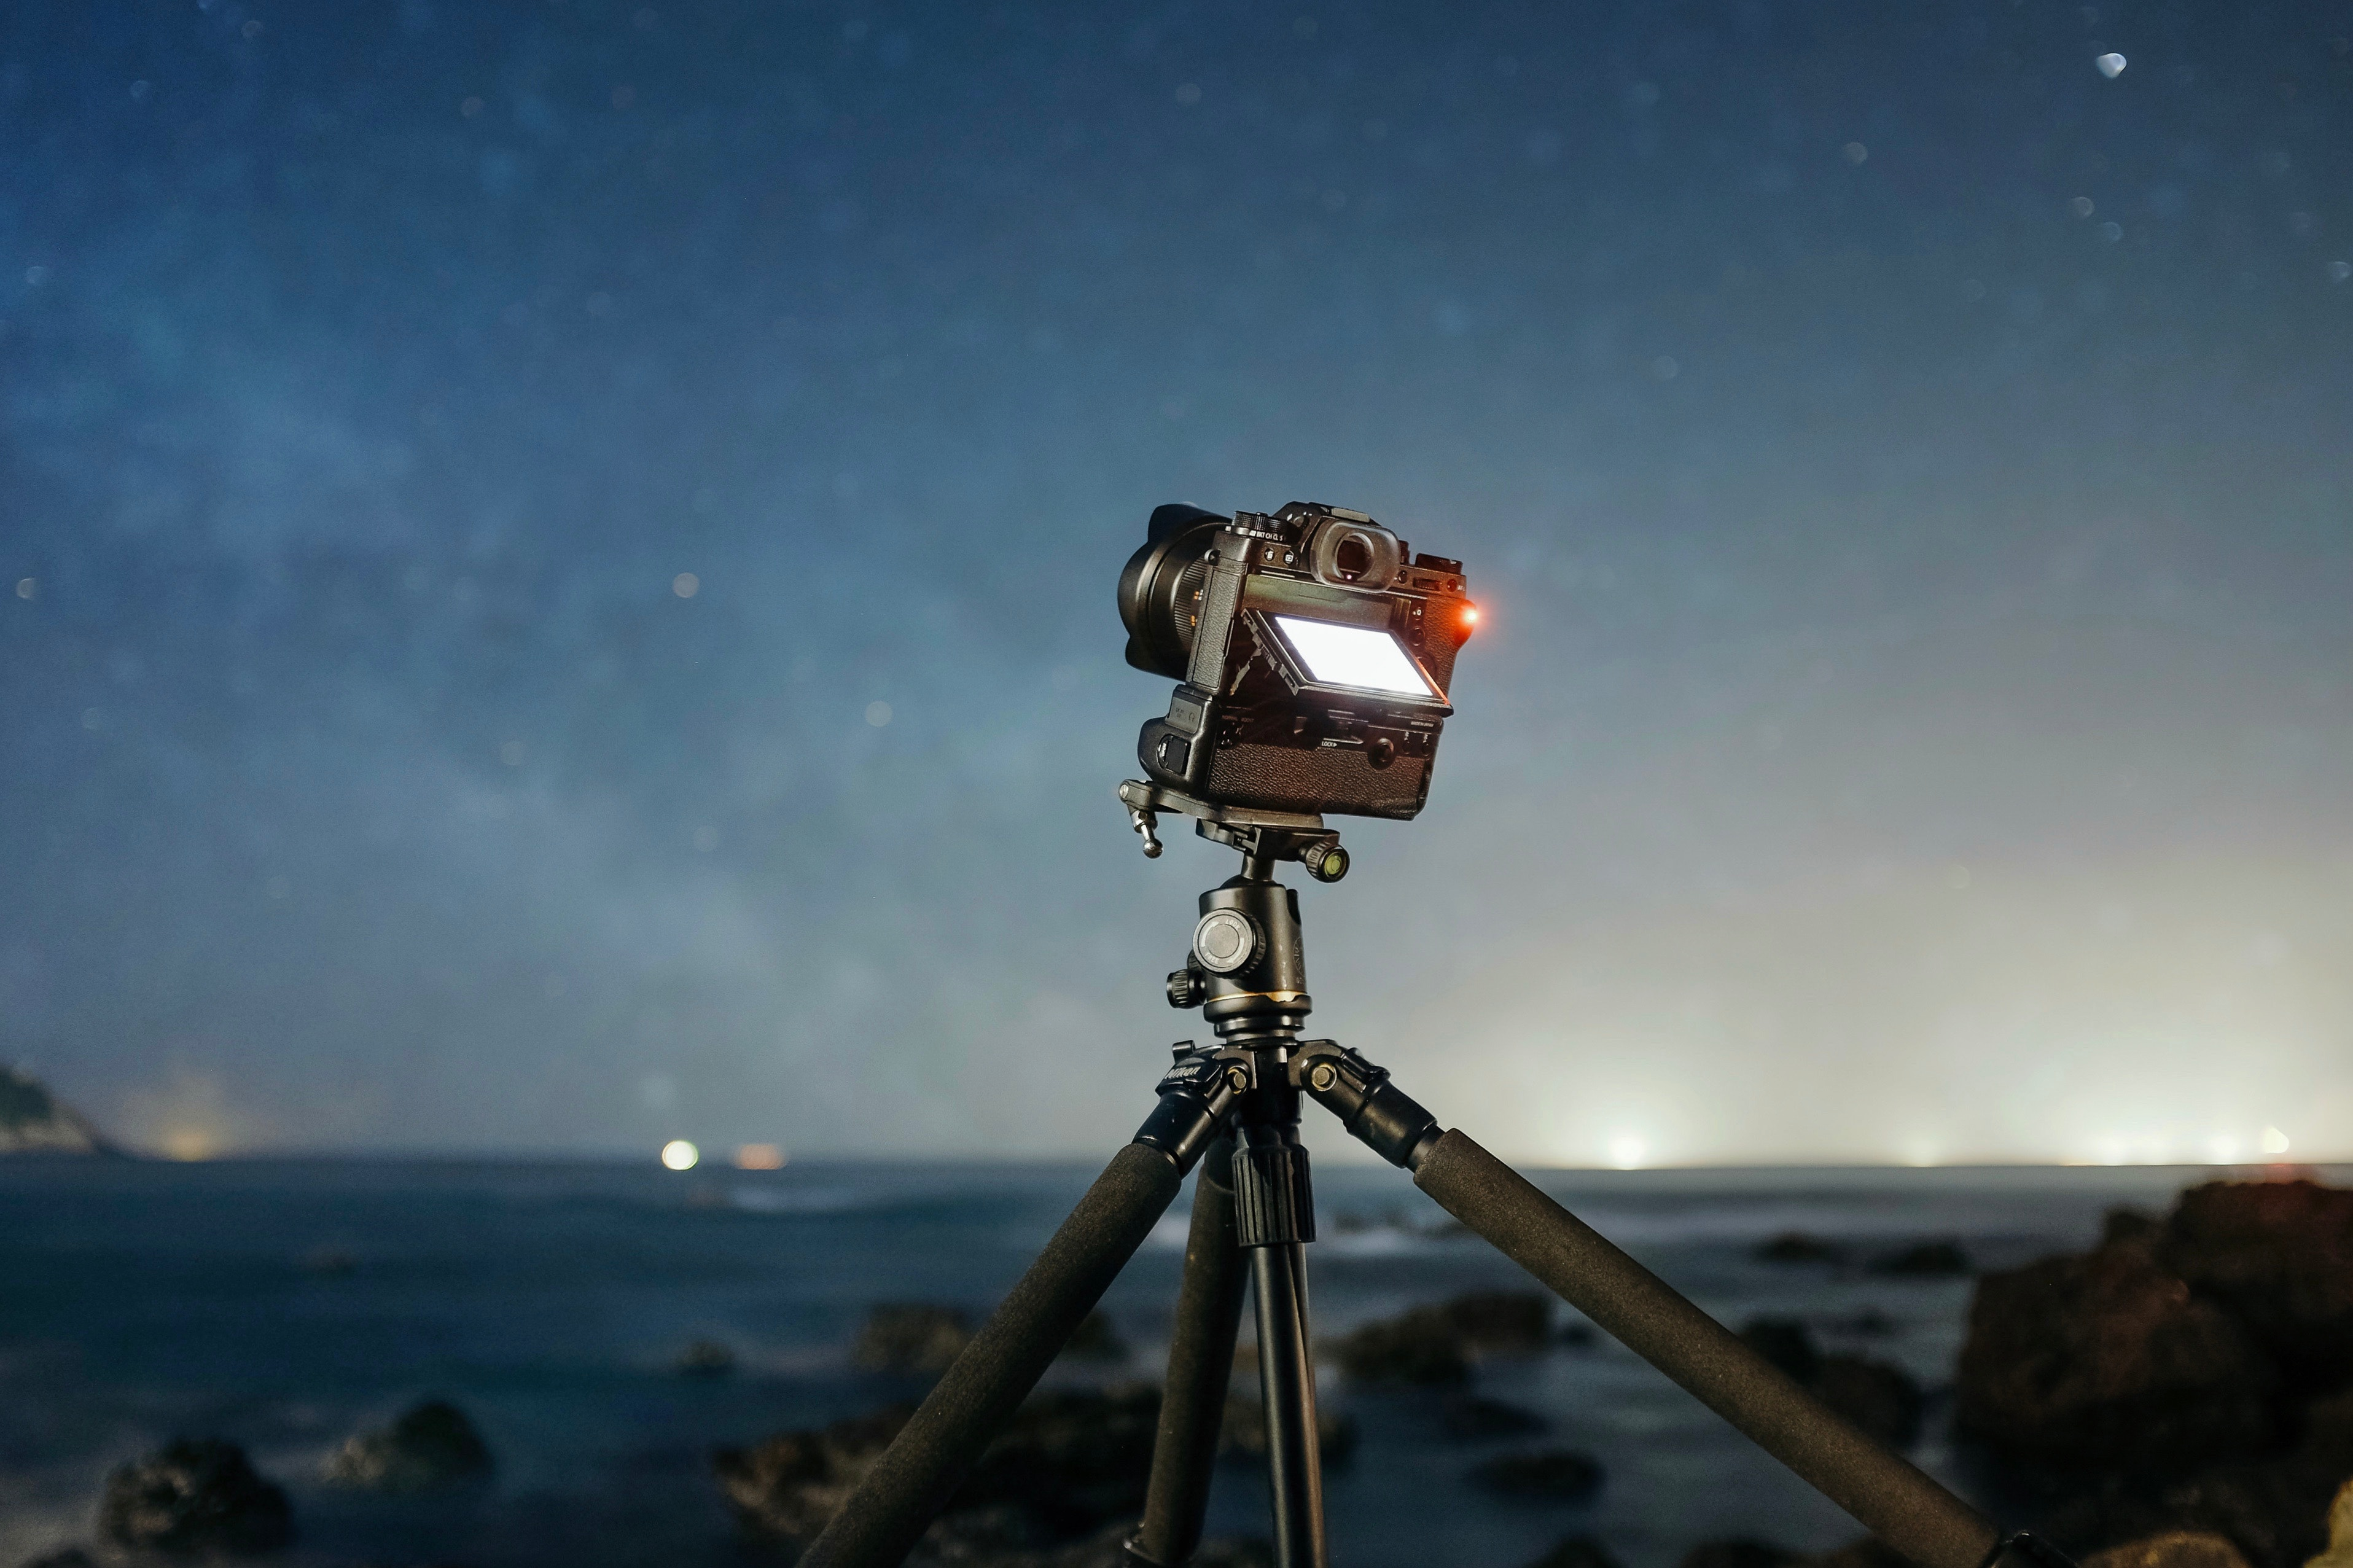 A DSLR camera set up on a tripod outdoors at night